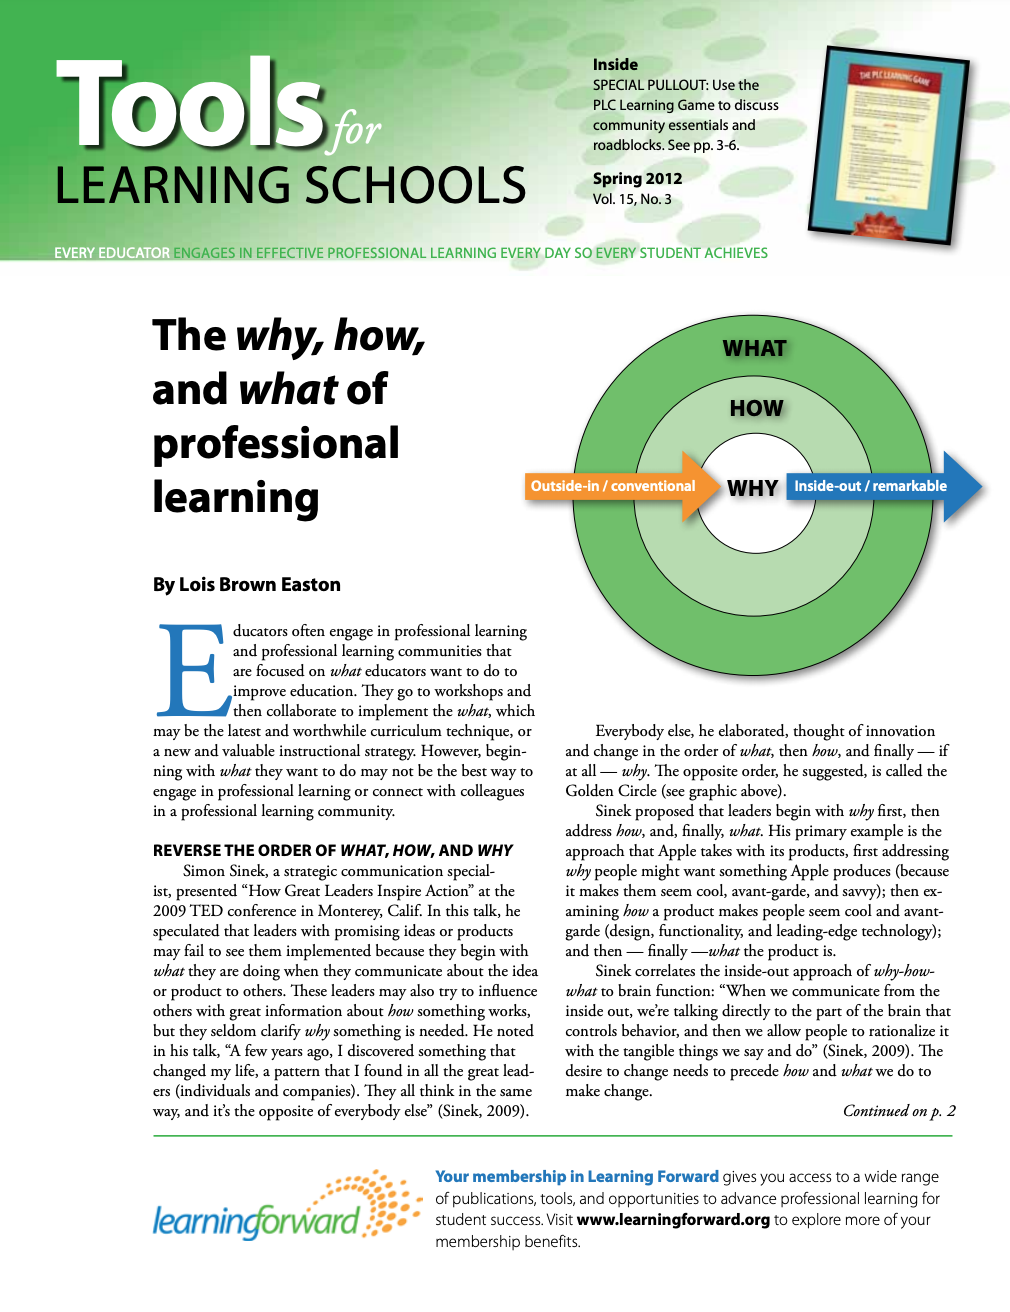 tools-for-learning-schools-spring-2012-vol-15-no-3